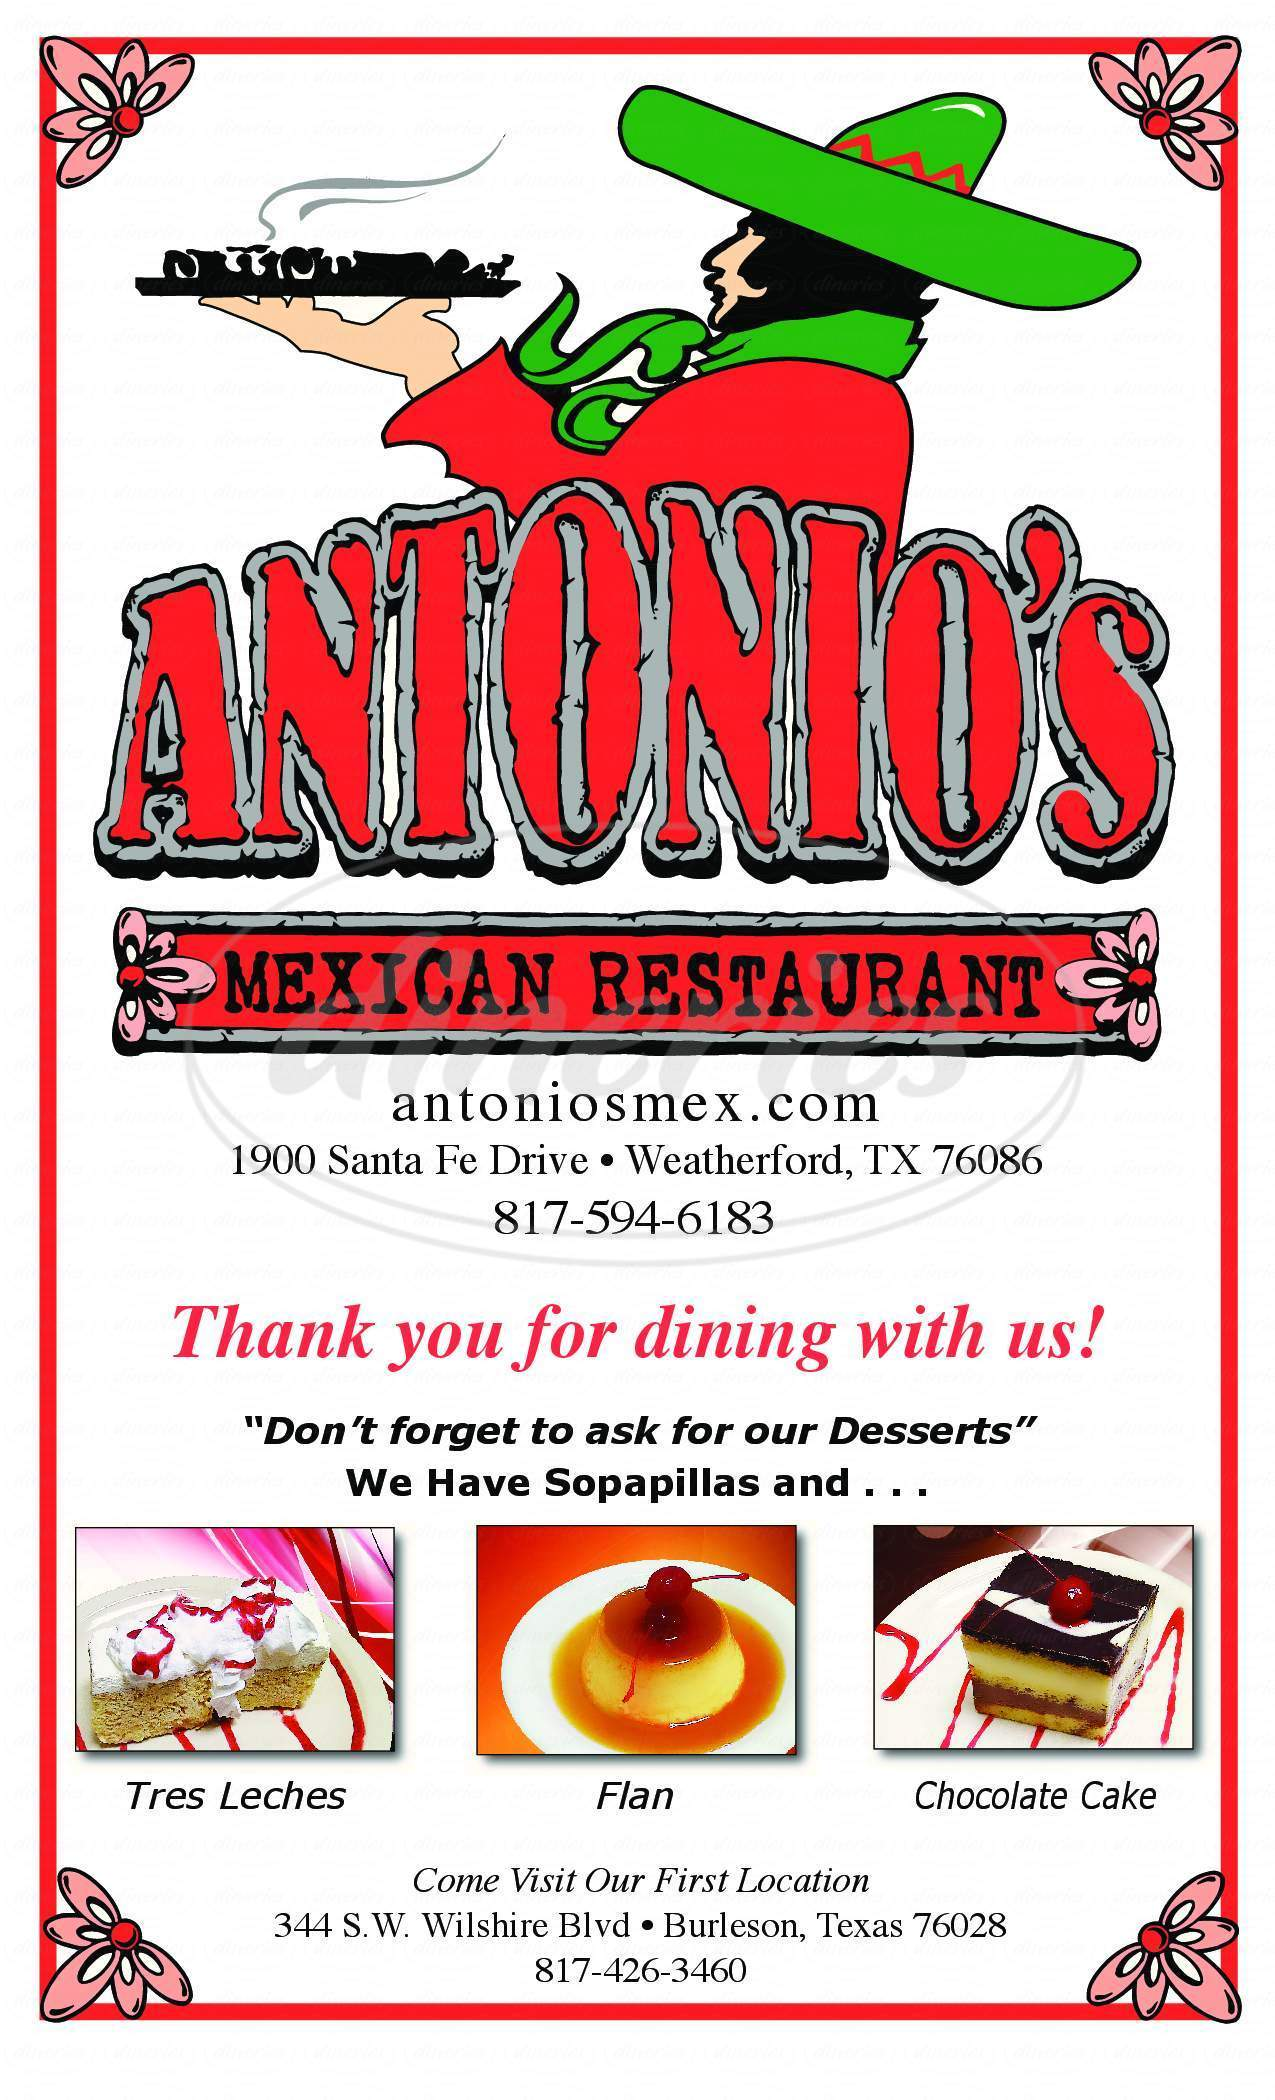 menu for Antonio's